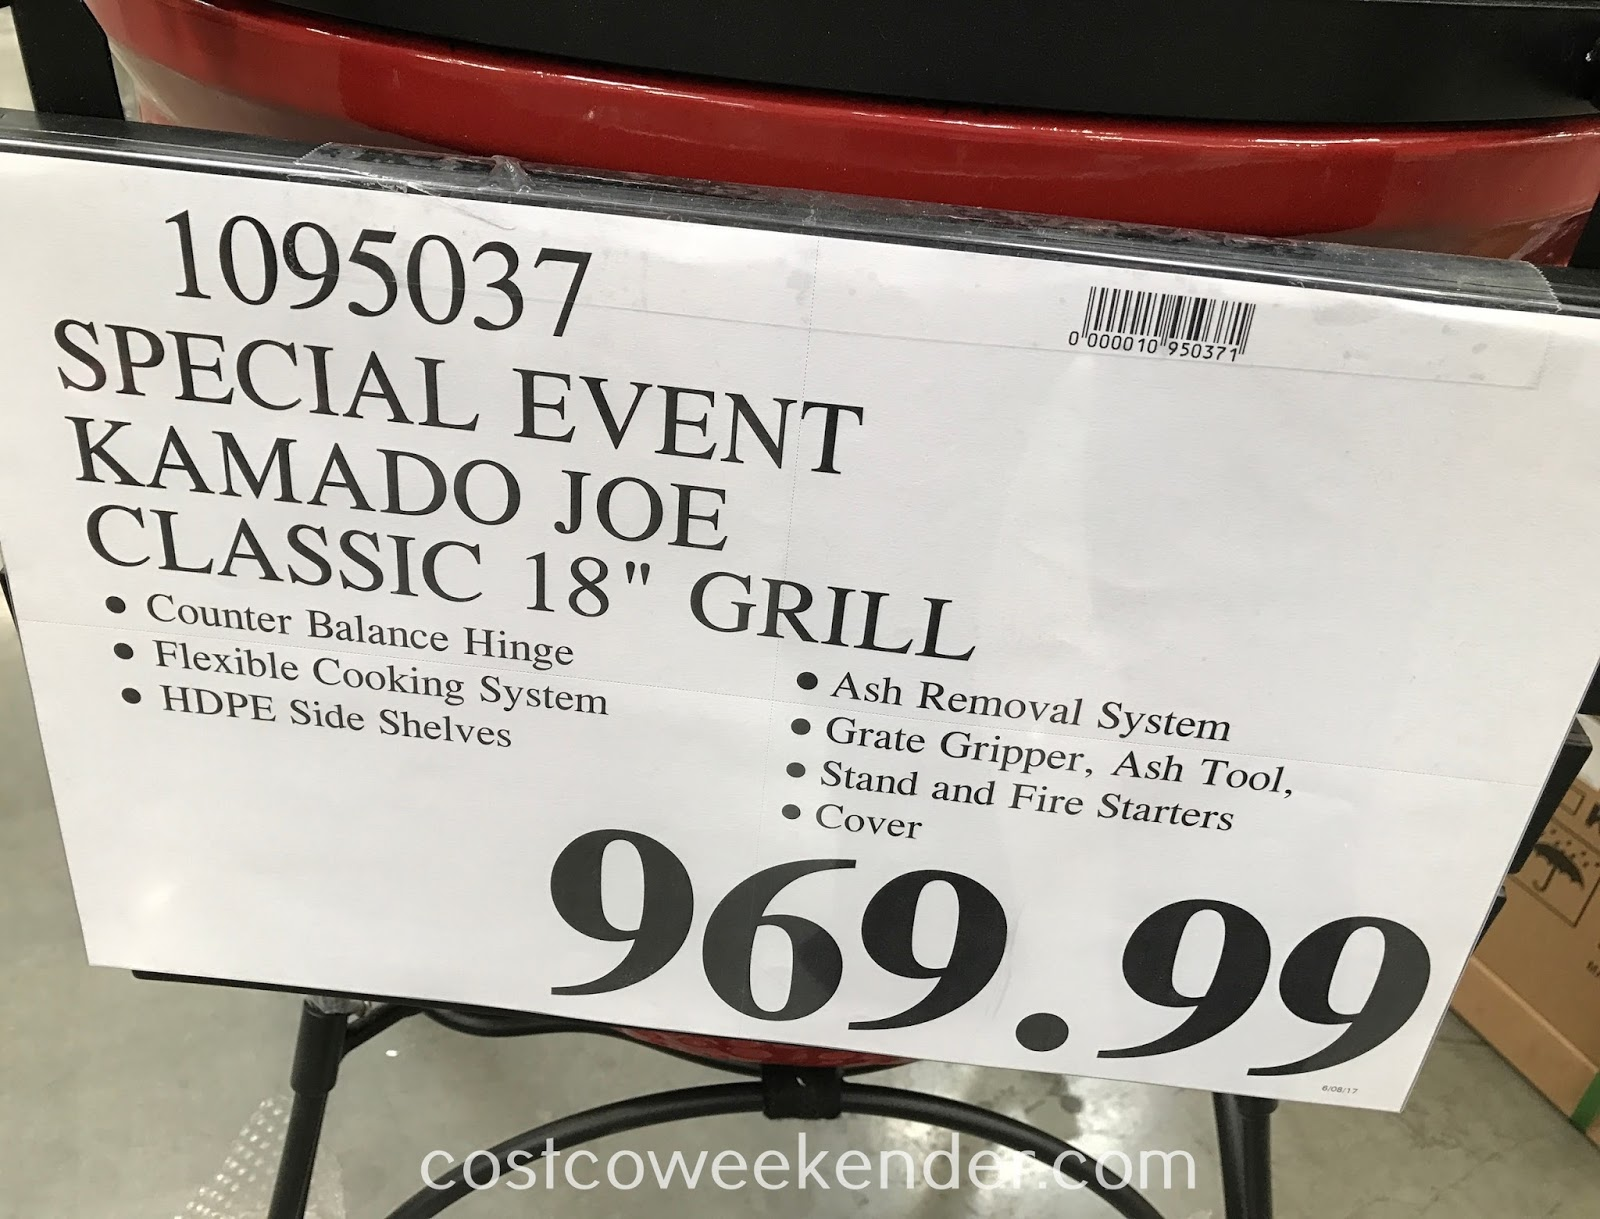 Costco 1095037 - Kamado Joe Classic 18in Grill: great for smoking brisket and ribs